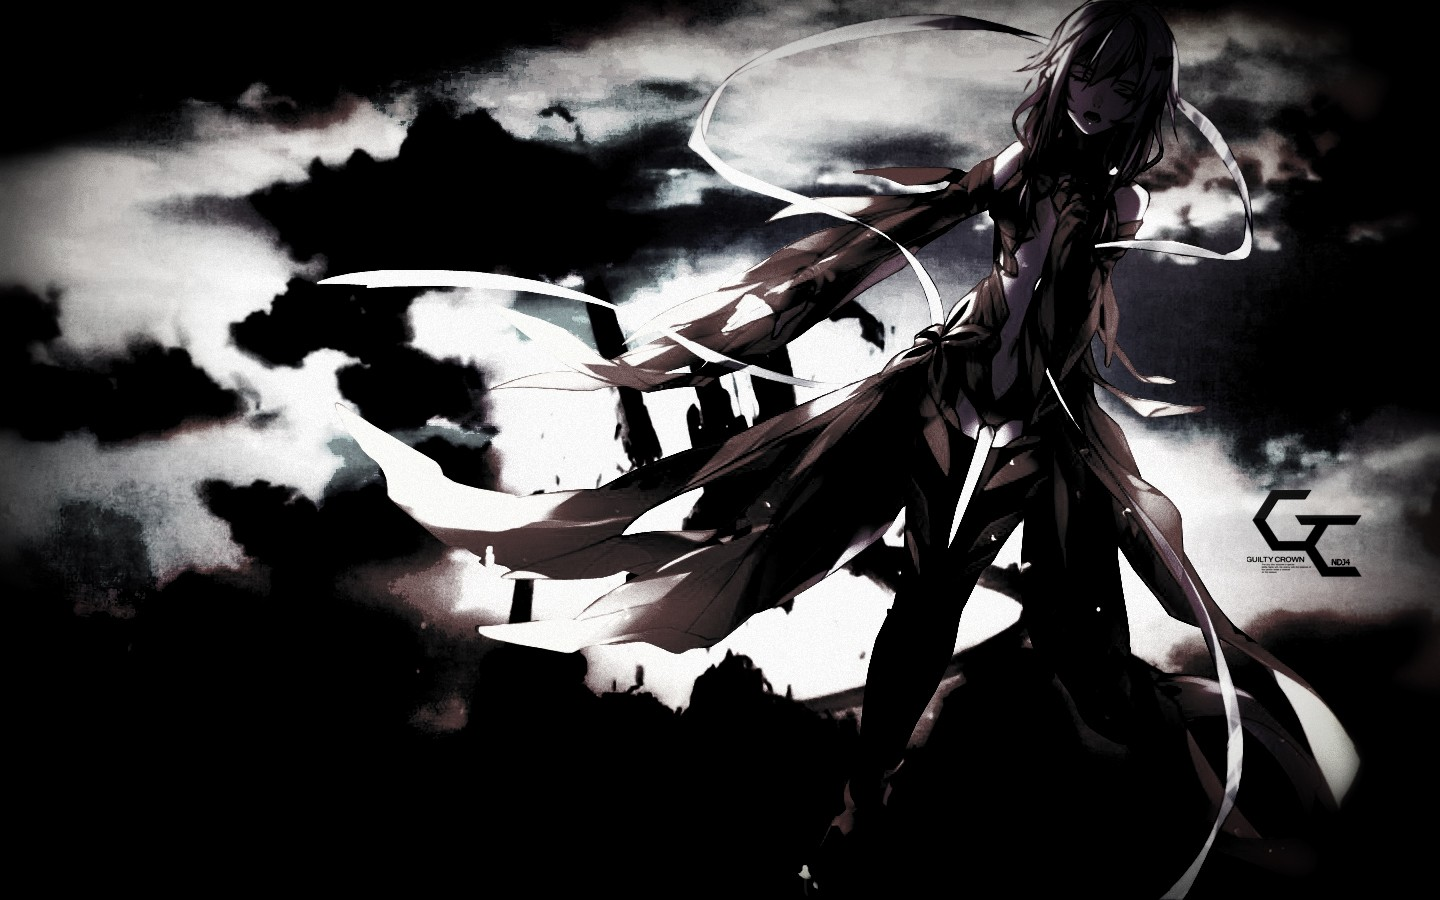 Dark Anime Wallpaper HD - WallpaperSafari